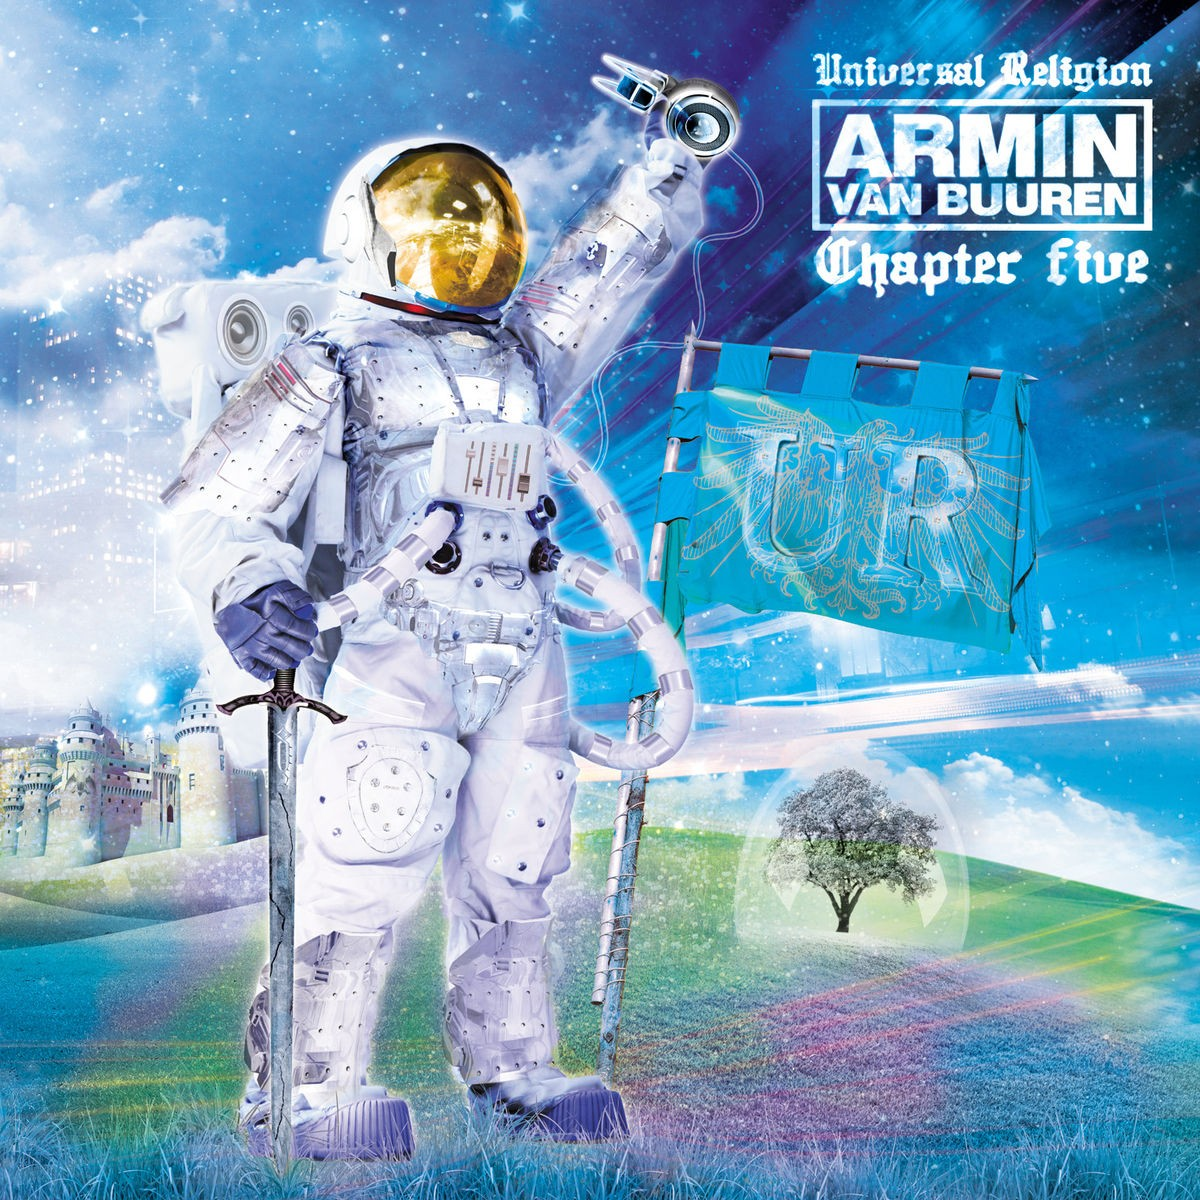 Armin Van Buuren - Universal Religion Chapter 5 CD - NEXTCD347